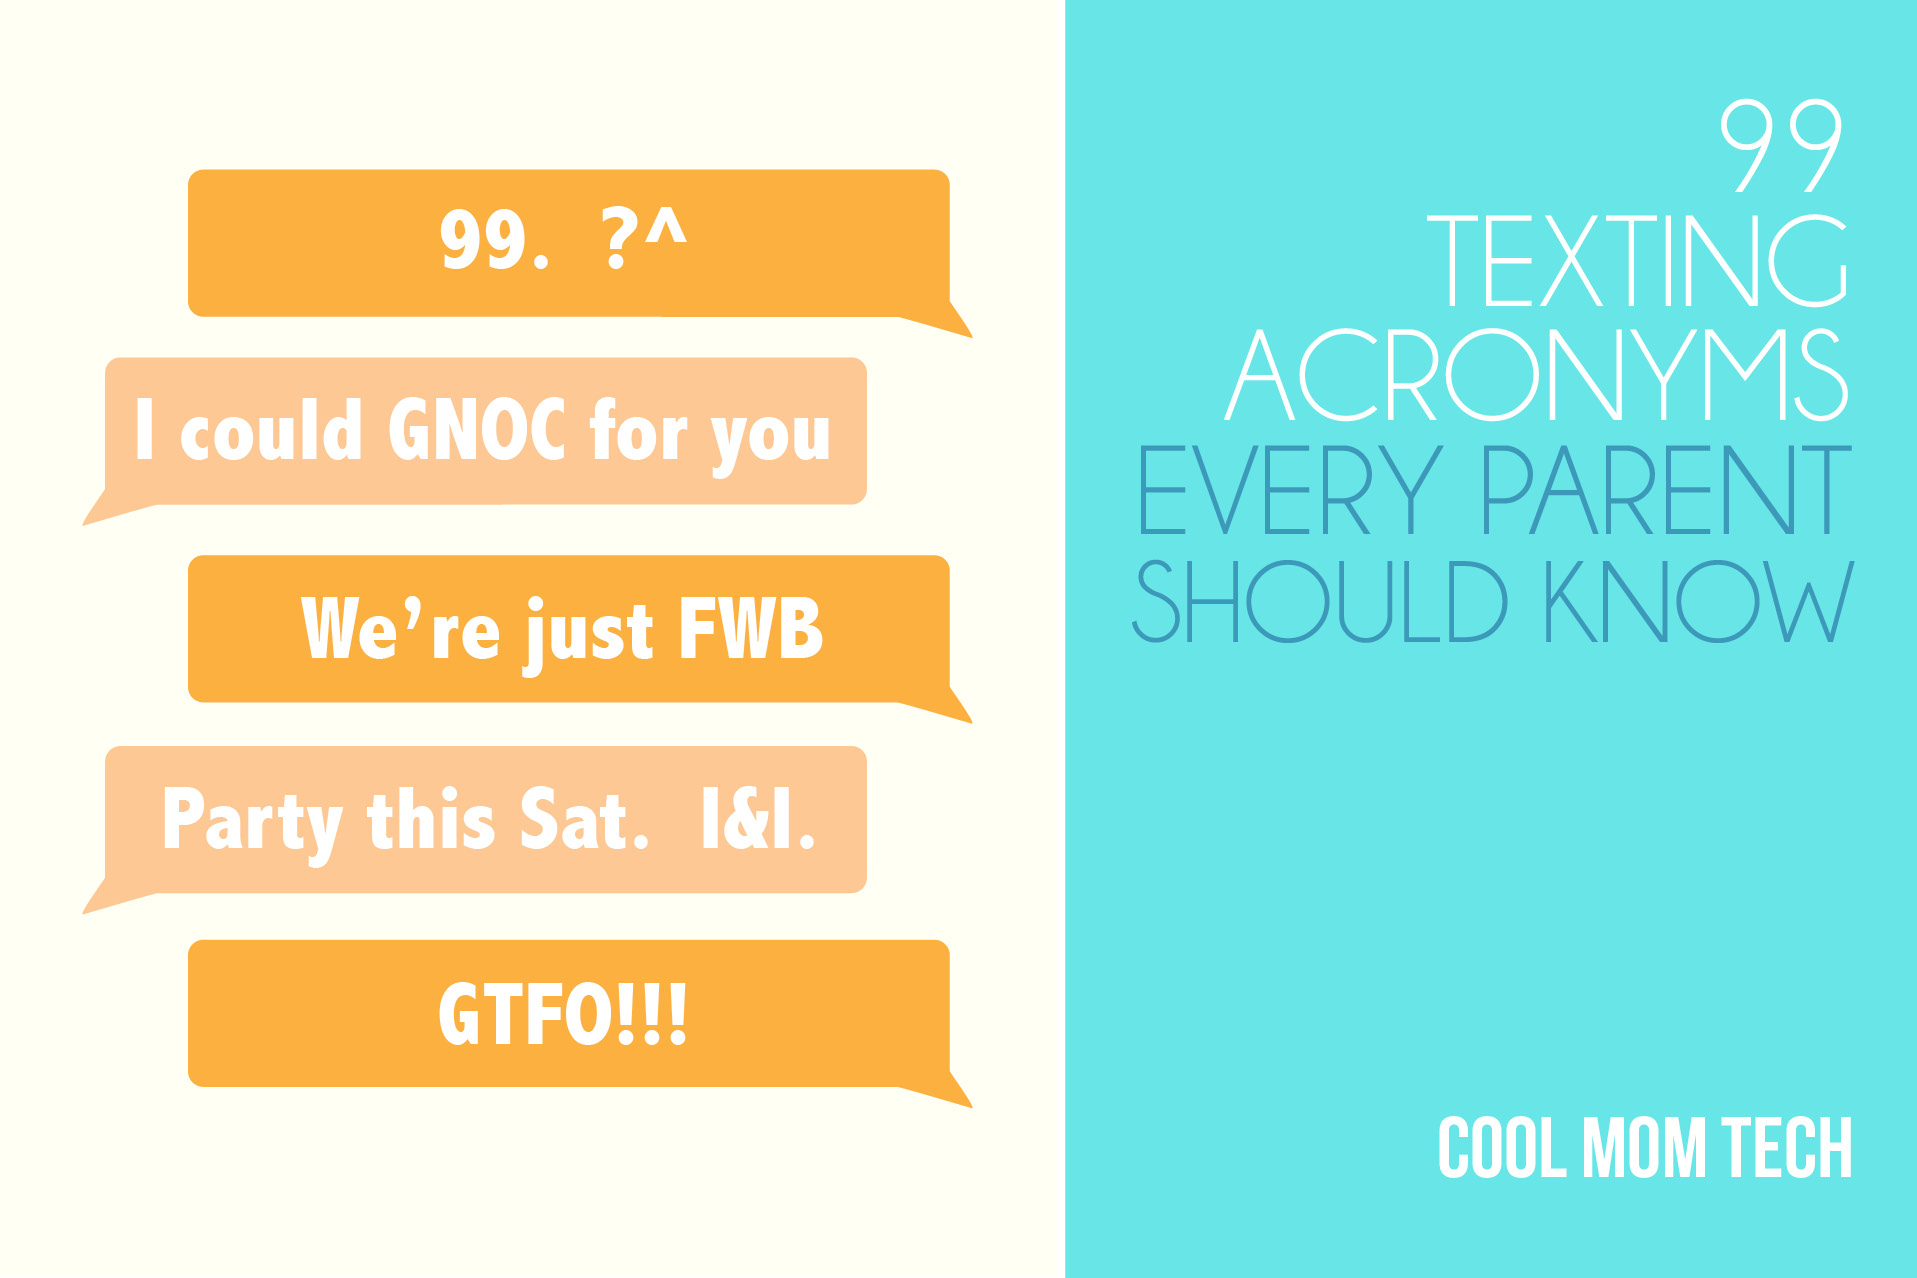 Text abbreviations parents should know